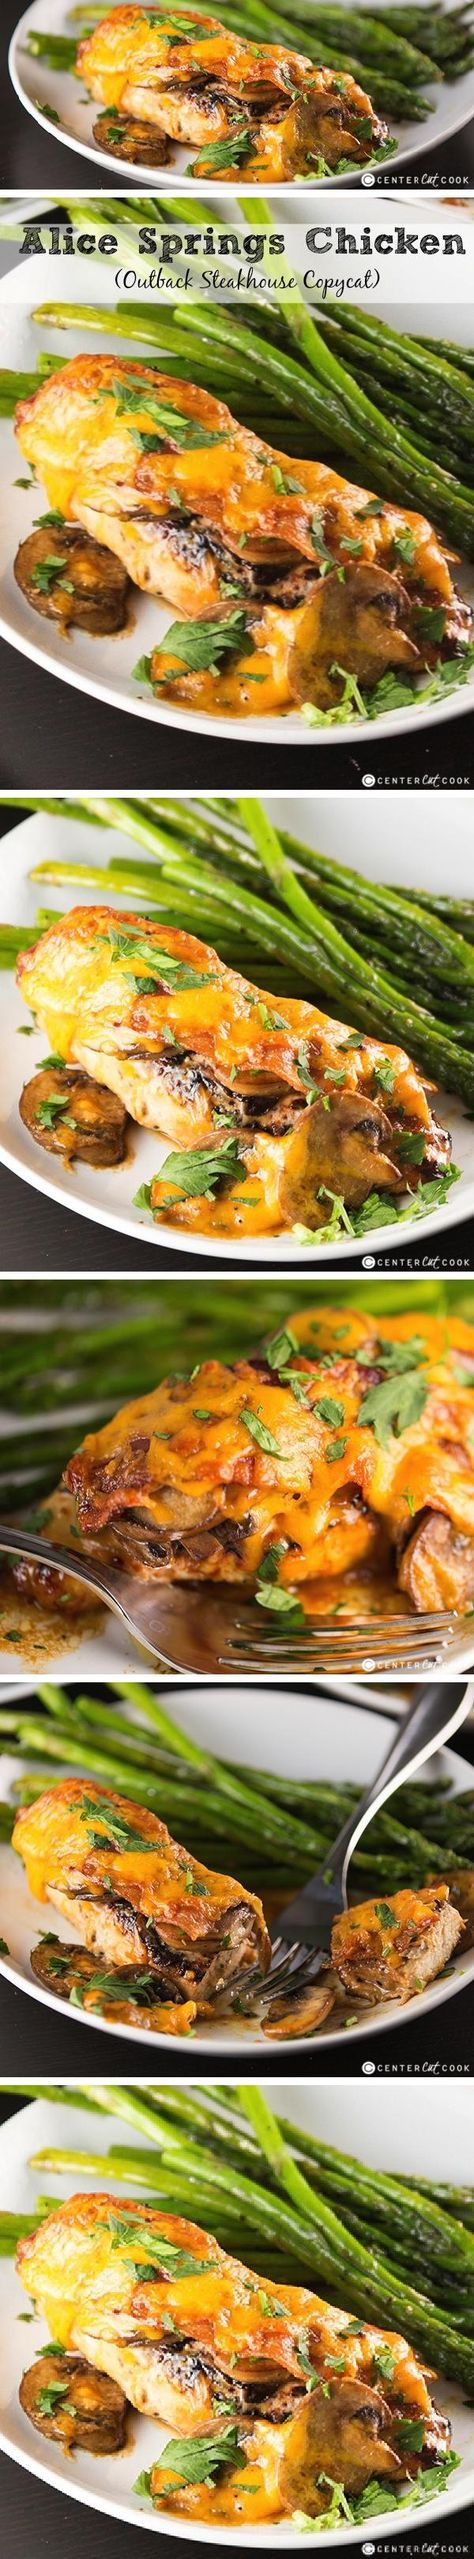 Learn how to make a mouth-watering copycat version of Outback STEAKHOUSE'S ALICE SPRINGS CHICKEN with mushrooms, crispy bacon, and melty Monterey Jack Cheese glazed with honey mustard sauce.